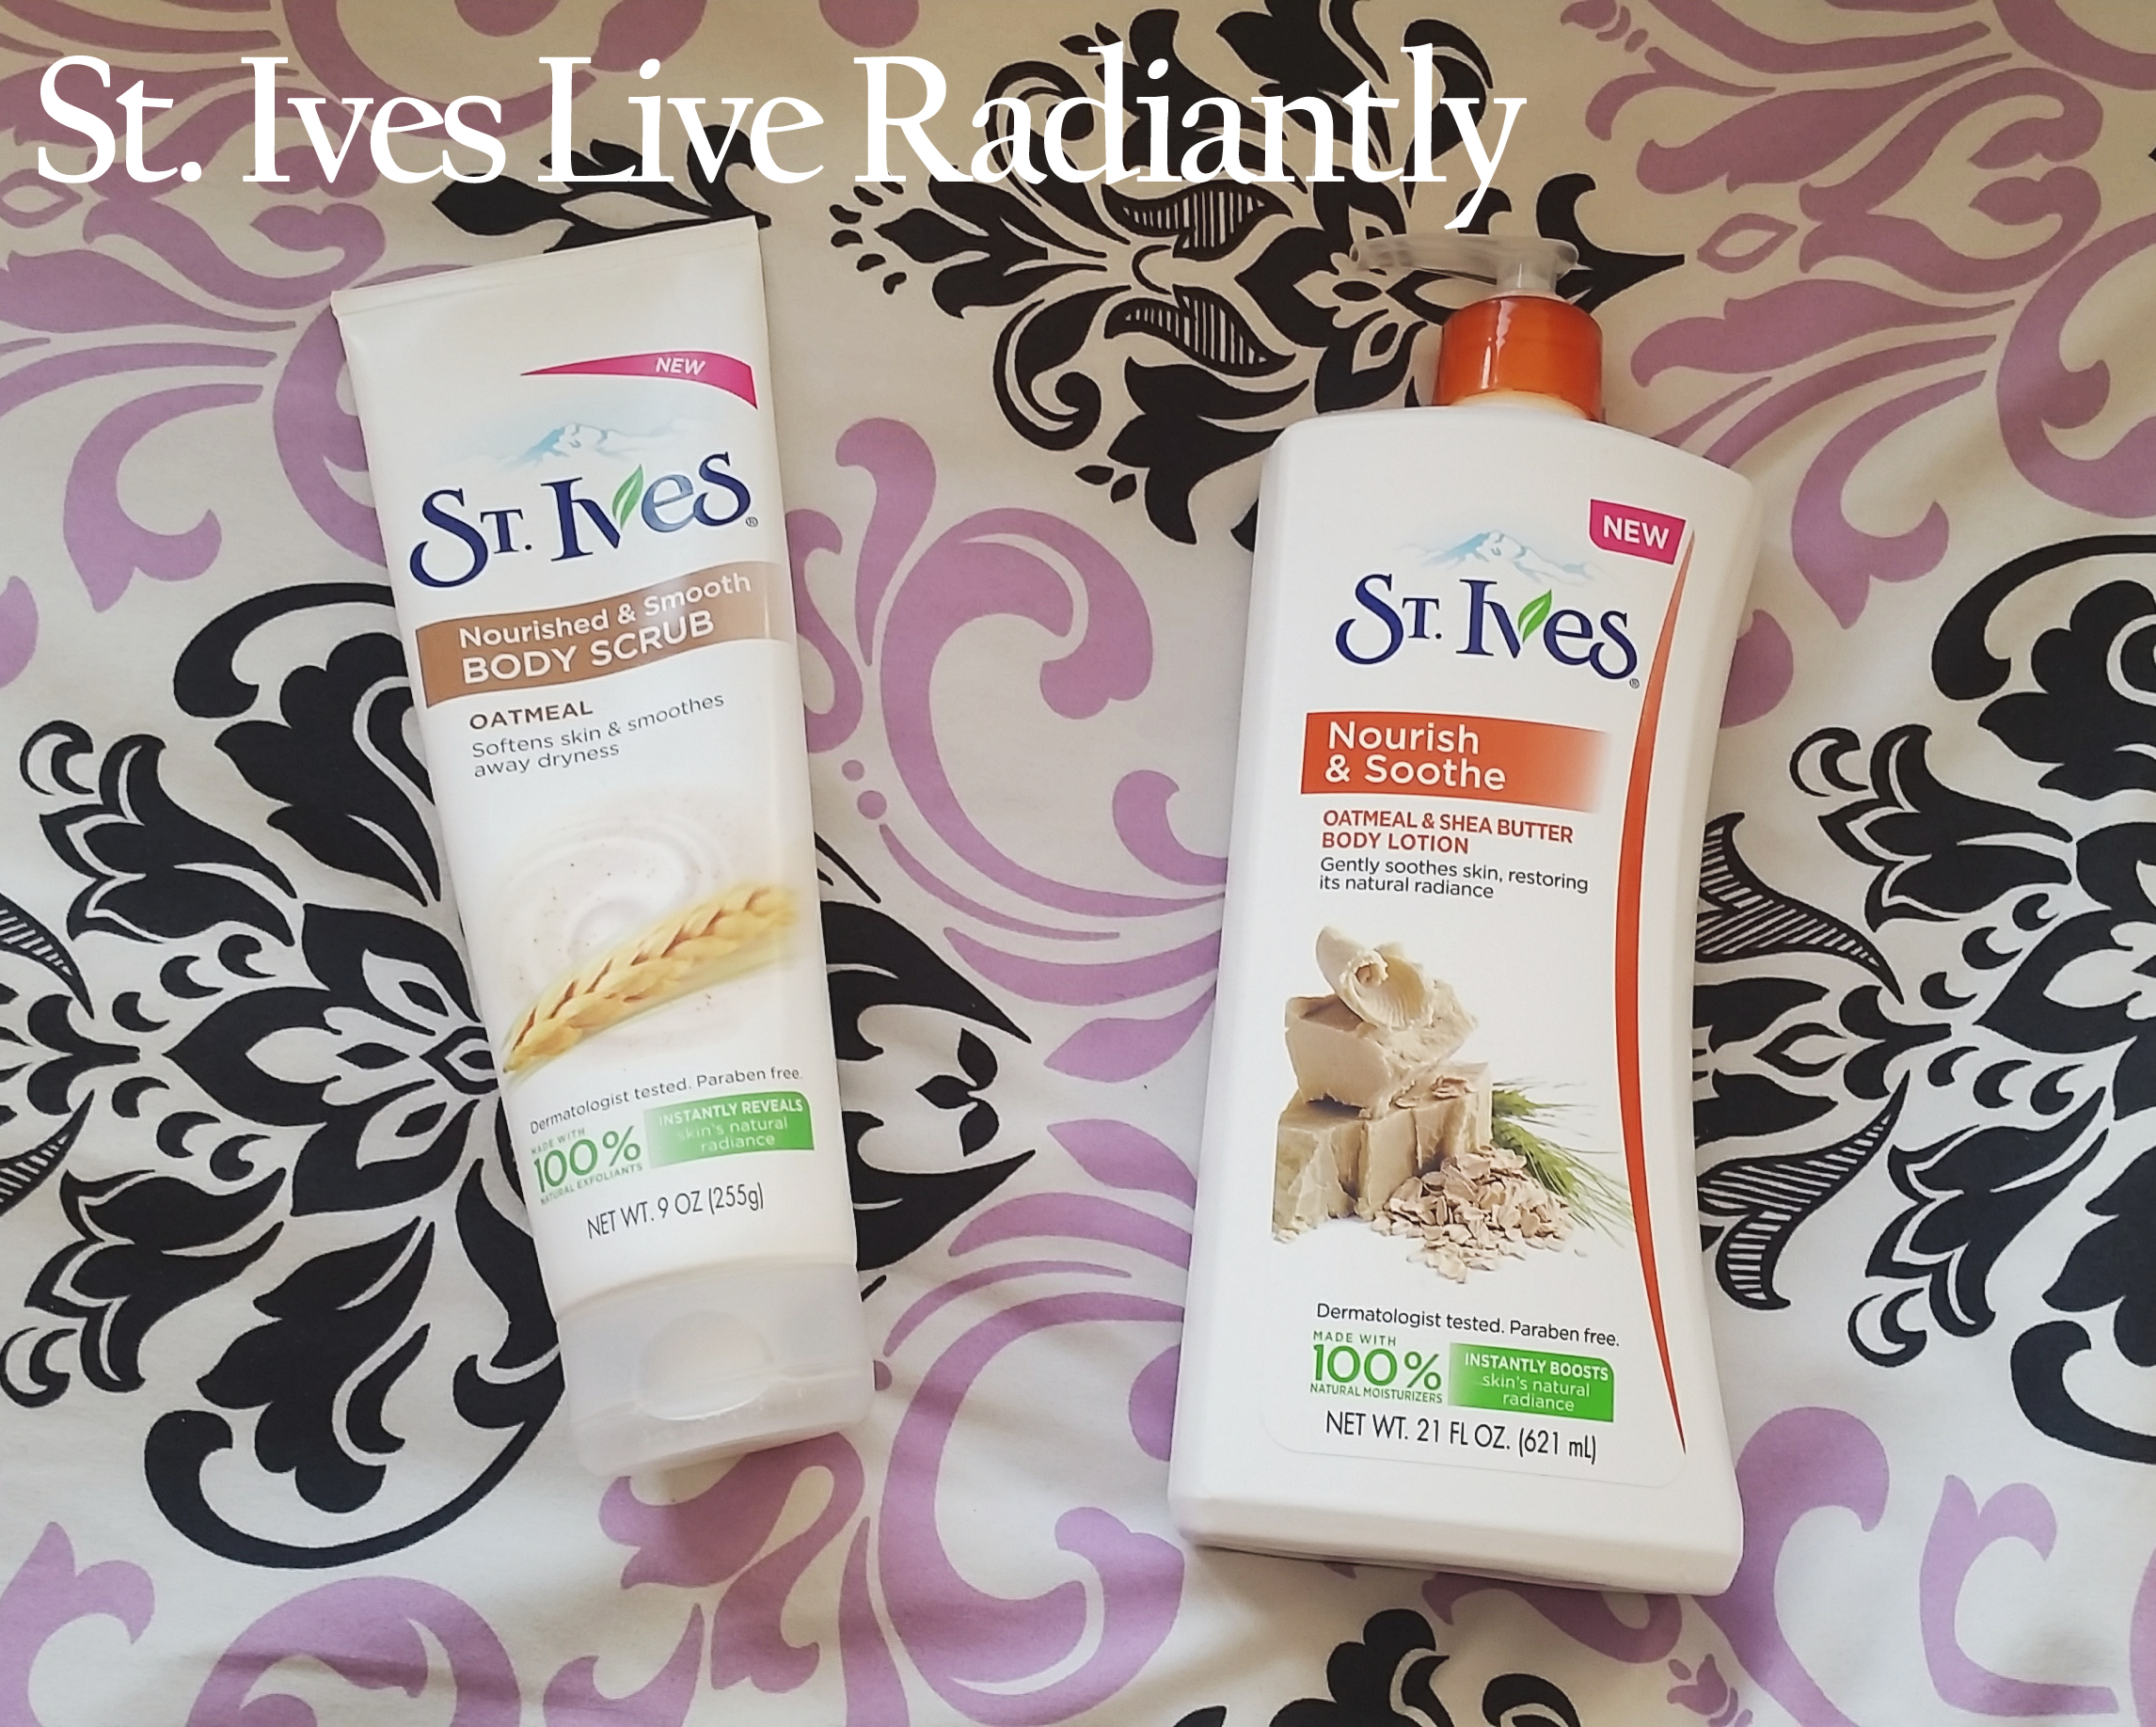 St. Ives Live Radiantly VoxBox from Influenster